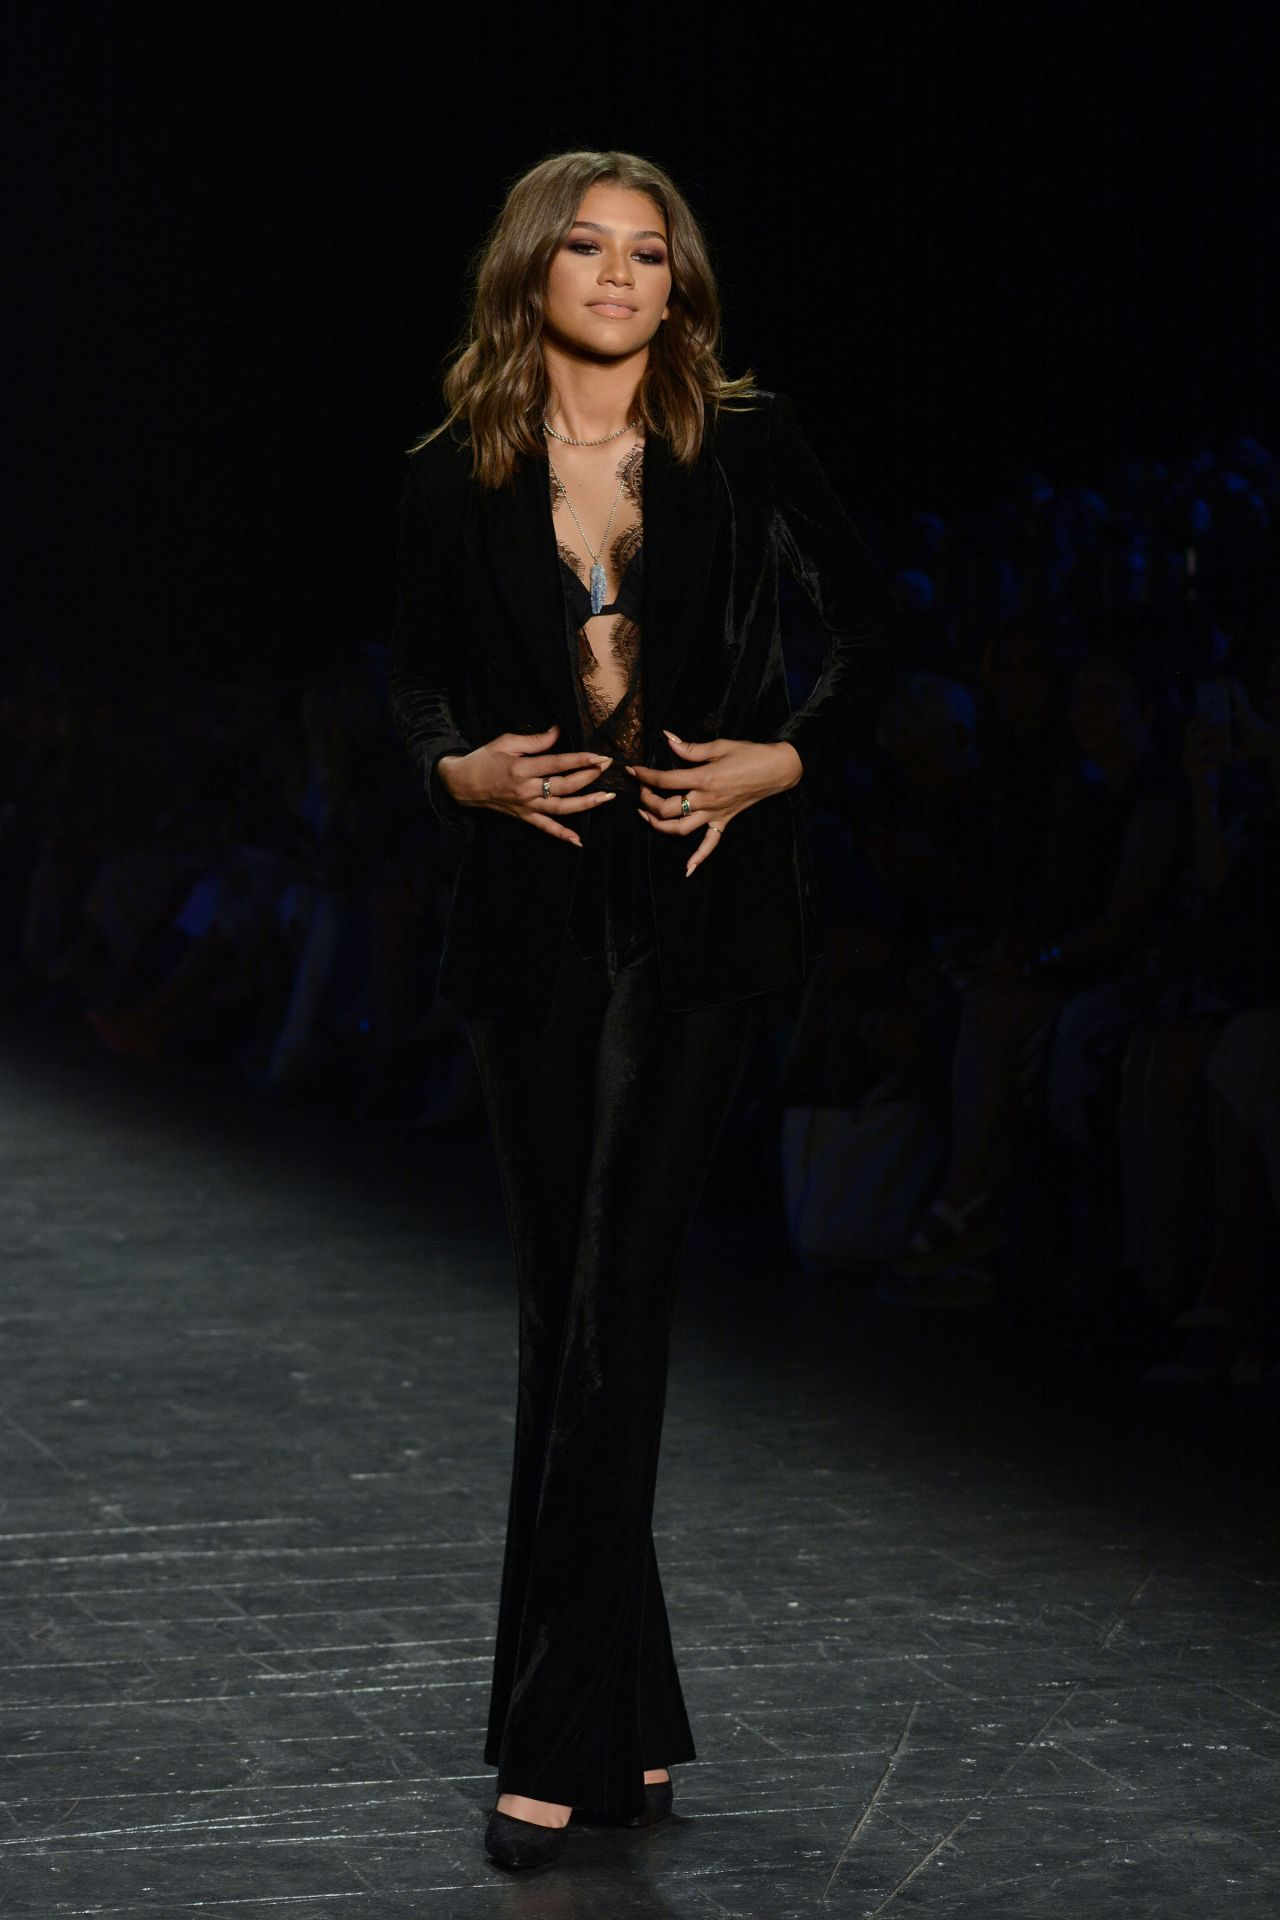 zendaya coleman project runway fashion show new york